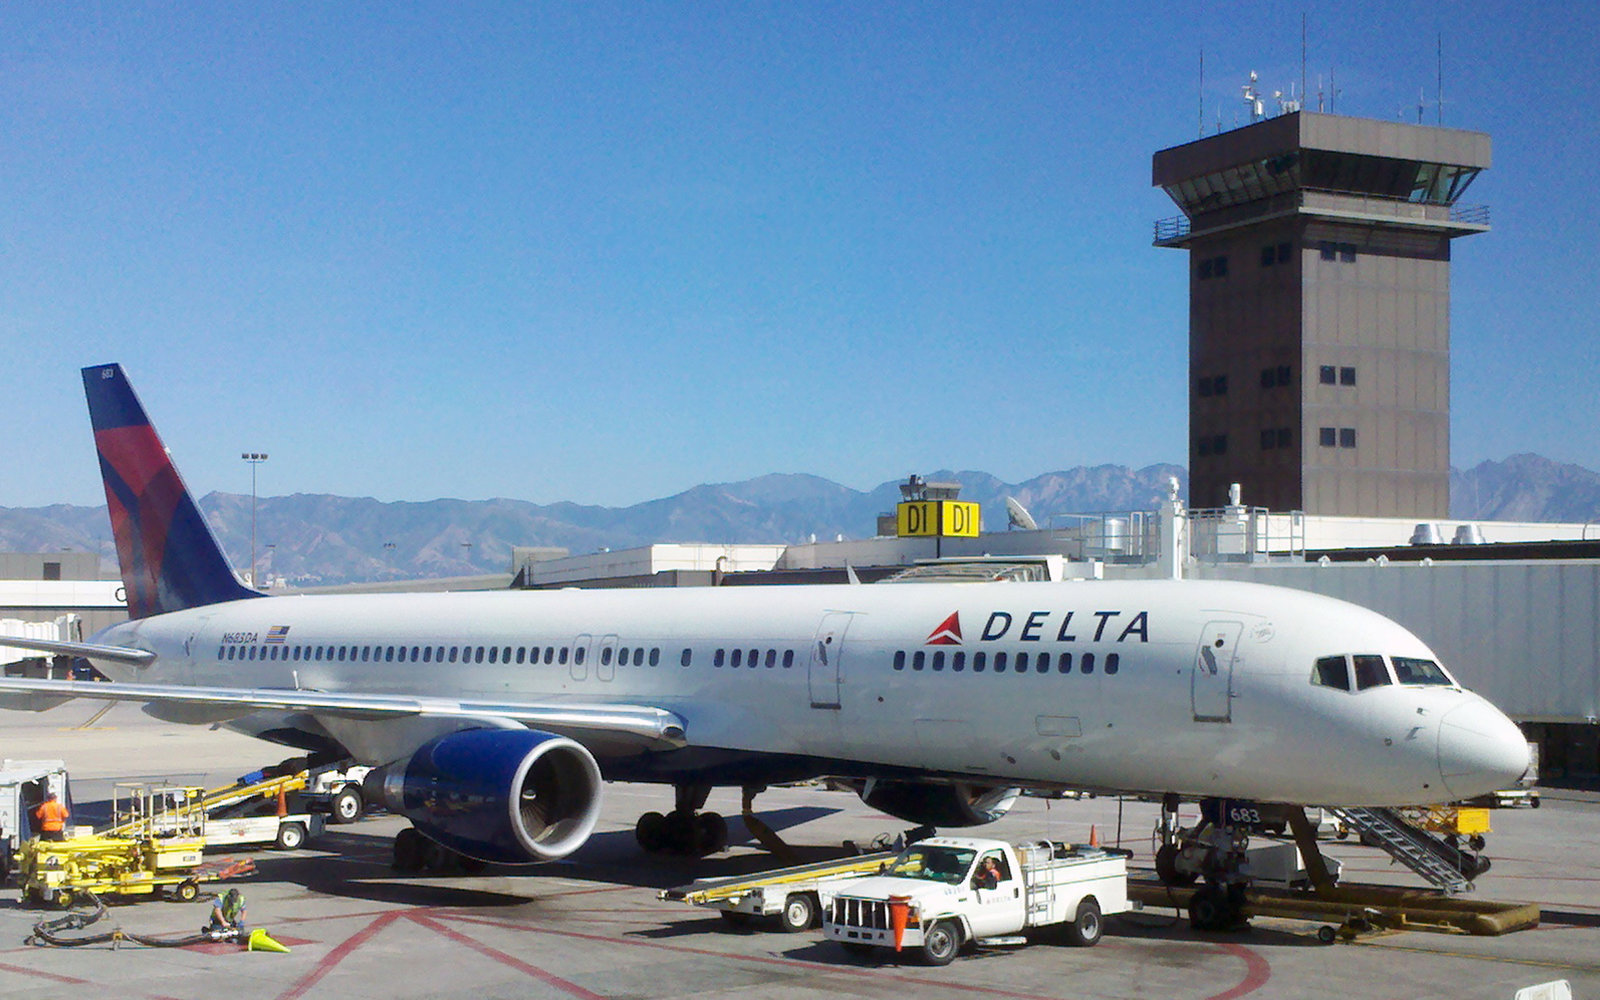 No. 15: Delta Air Lines, Domestic